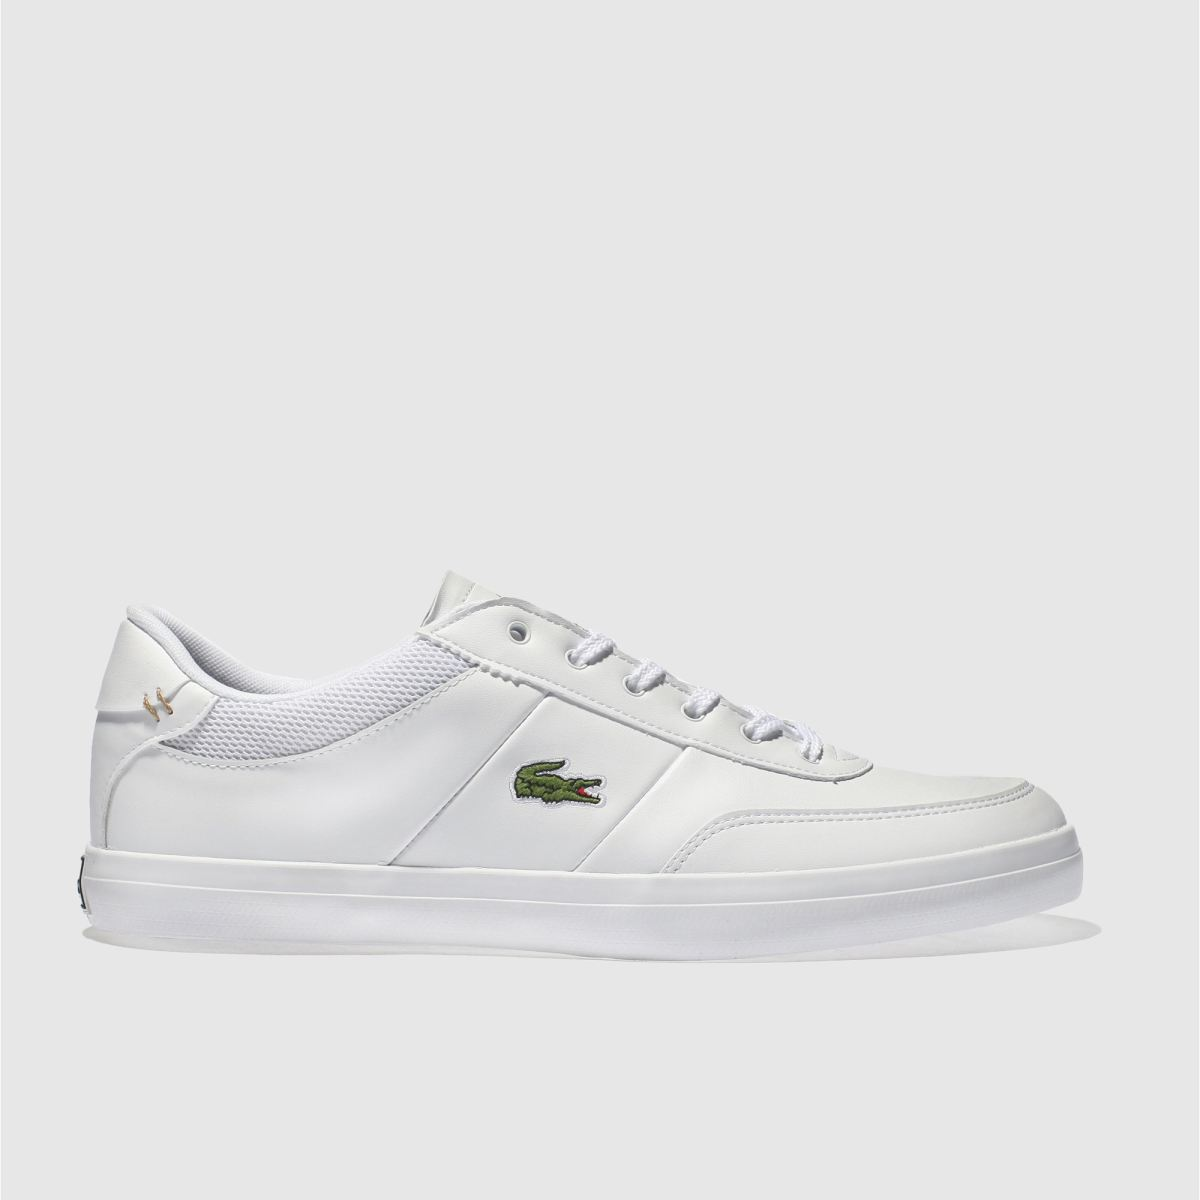 Lacoste White Court-master Trainers